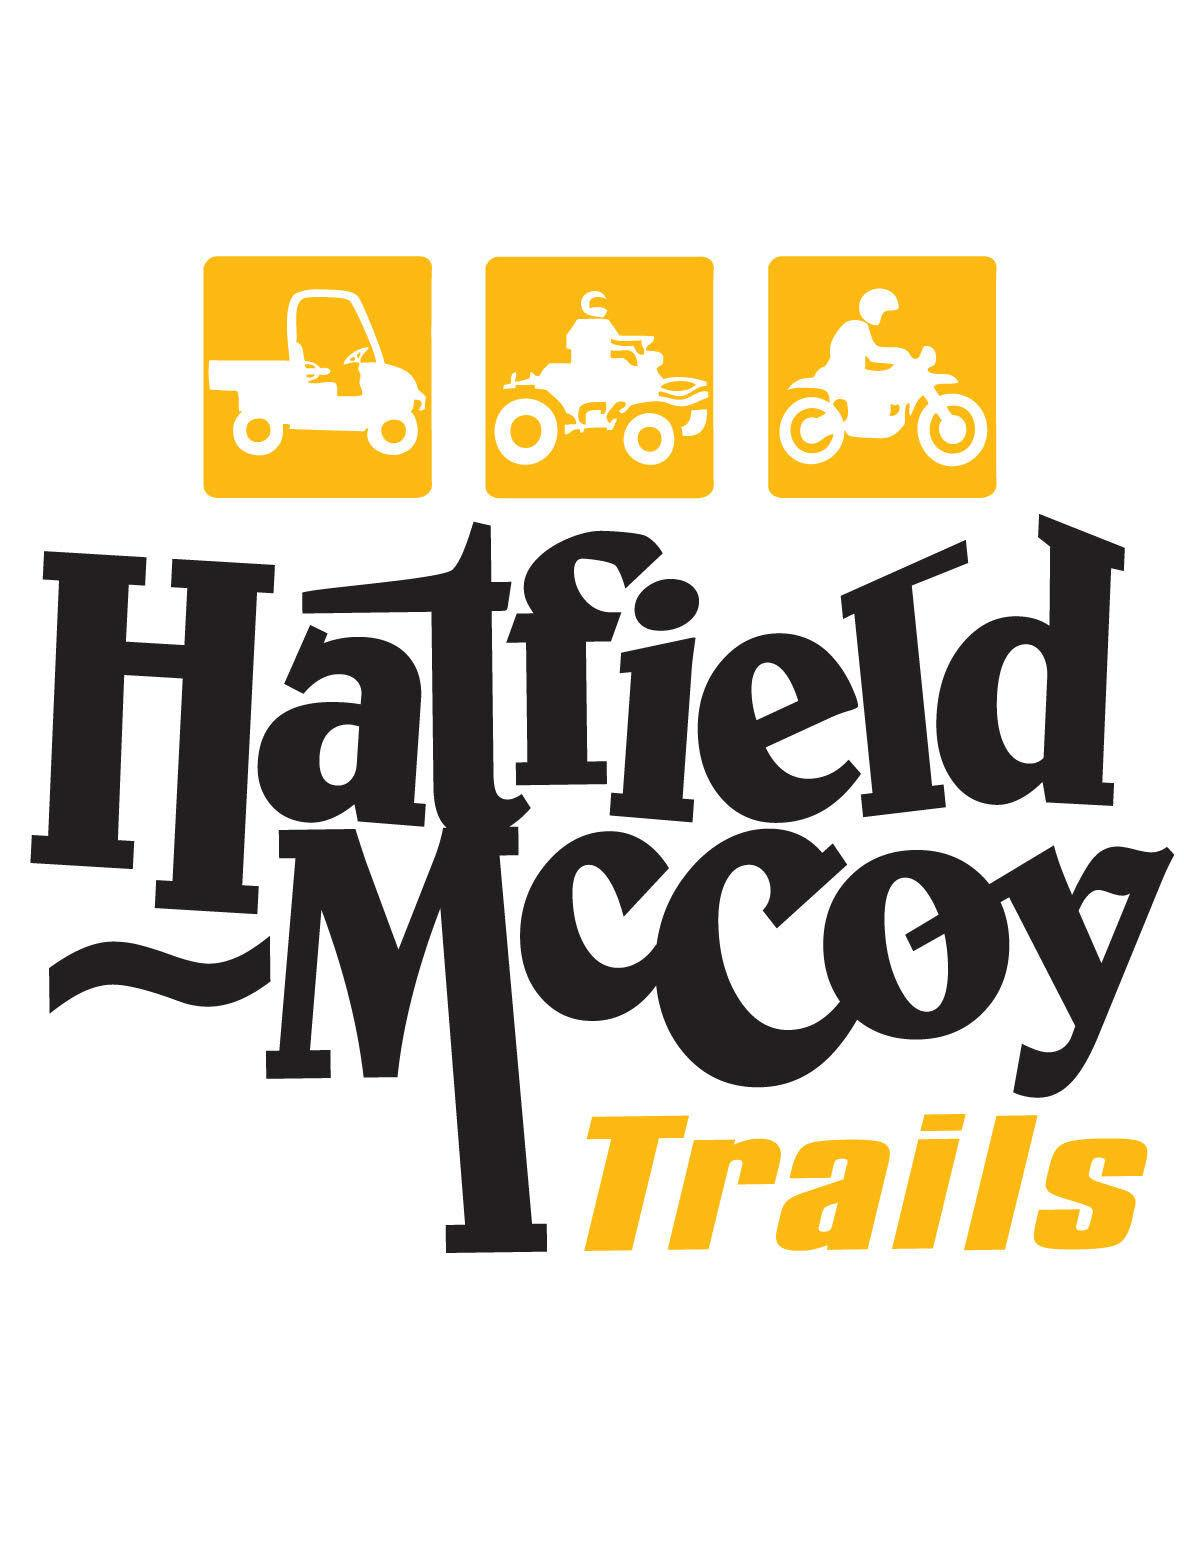 Hatfield-McCoy Logo